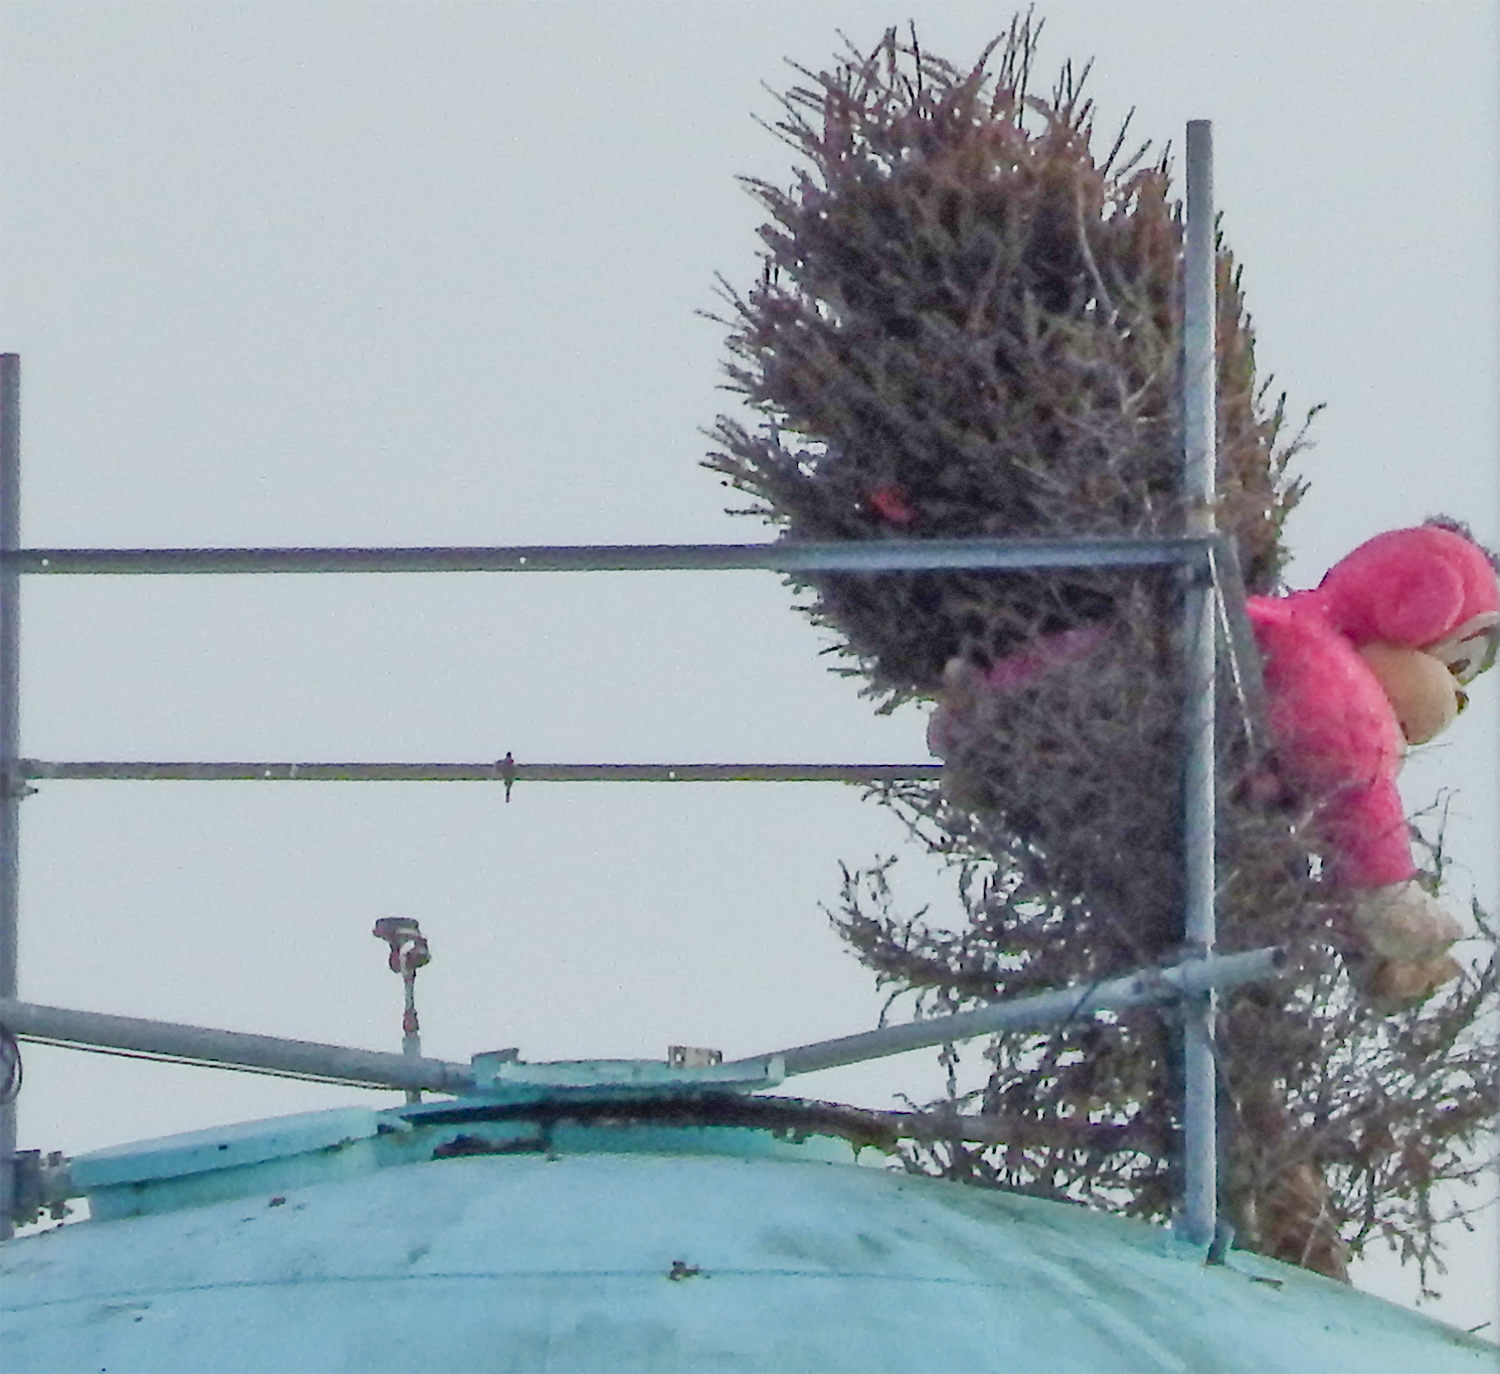 Pink monkey attached to bush on top of Apollo Beach Water Tower across from Sea Food Dive and Winn Dixi on US 41 in Apollo Beach